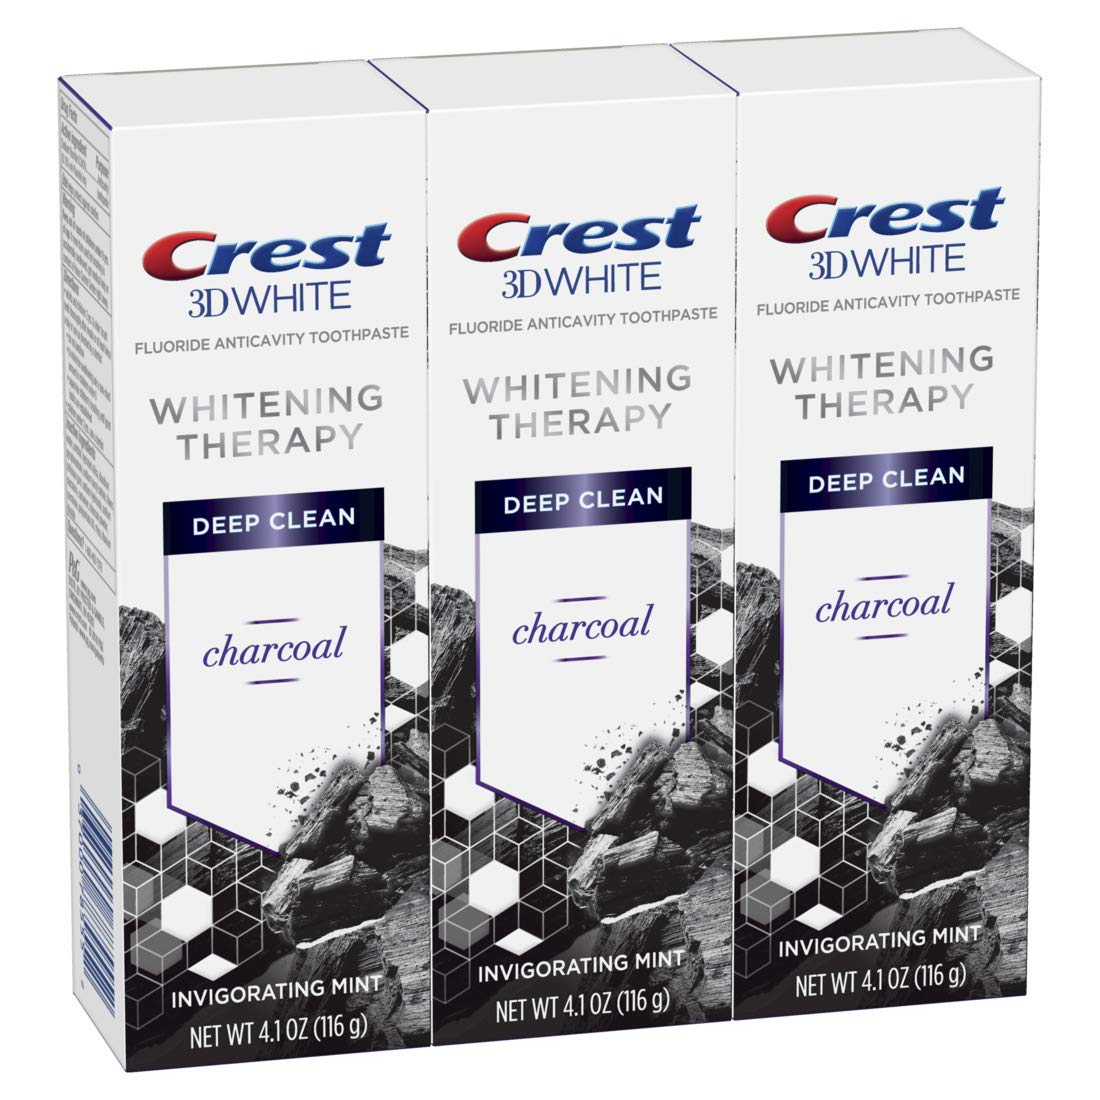 Crest Charcoal 3D Genuine White Max 73% OFF Toothpaste Clean Therapy Deep Whitening